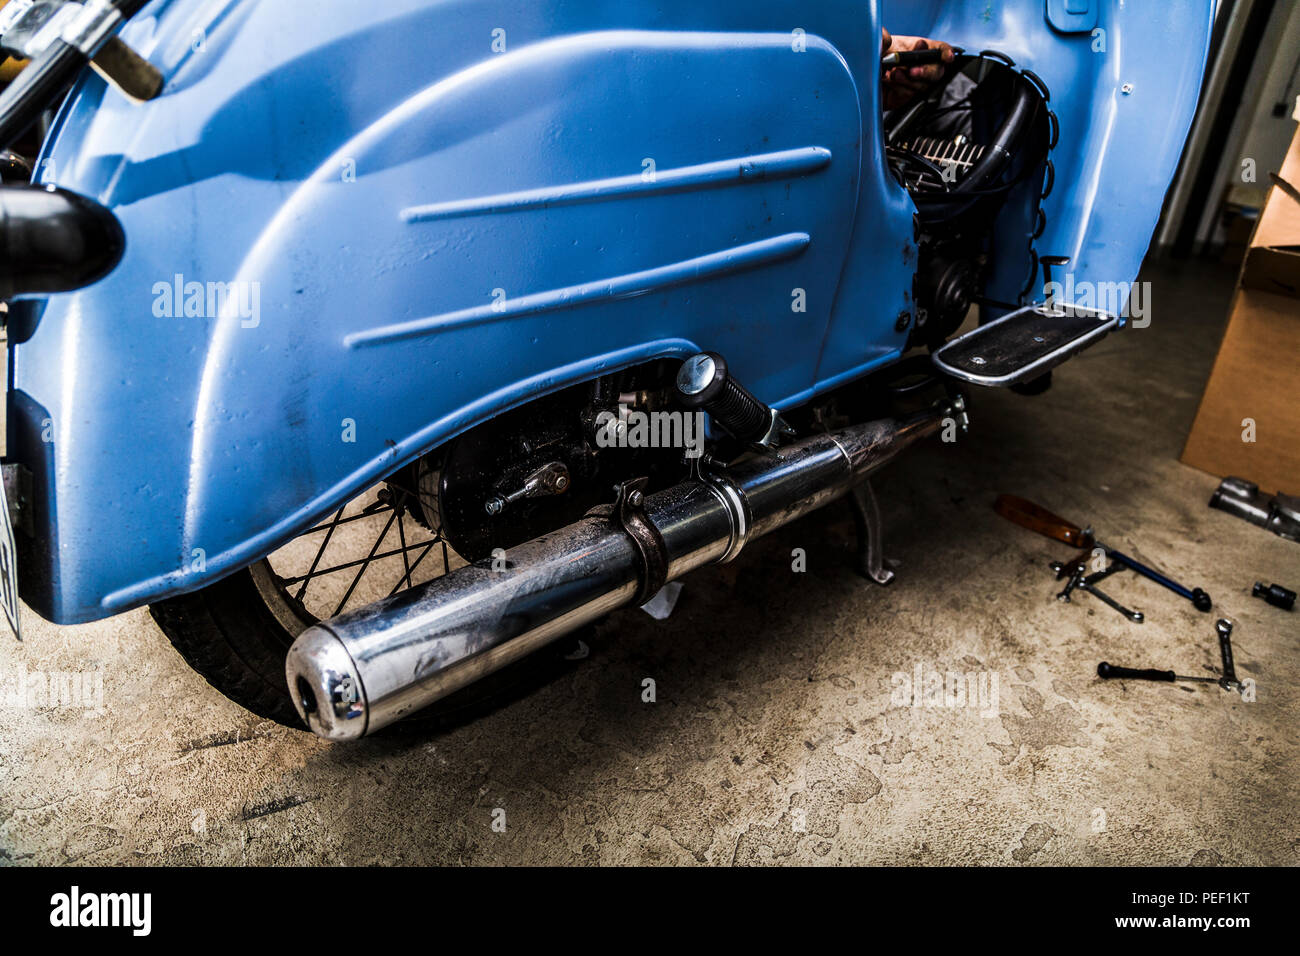 Exhaust Pipe Stock Photos & Exhaust Pipe Stock Images - Alamy